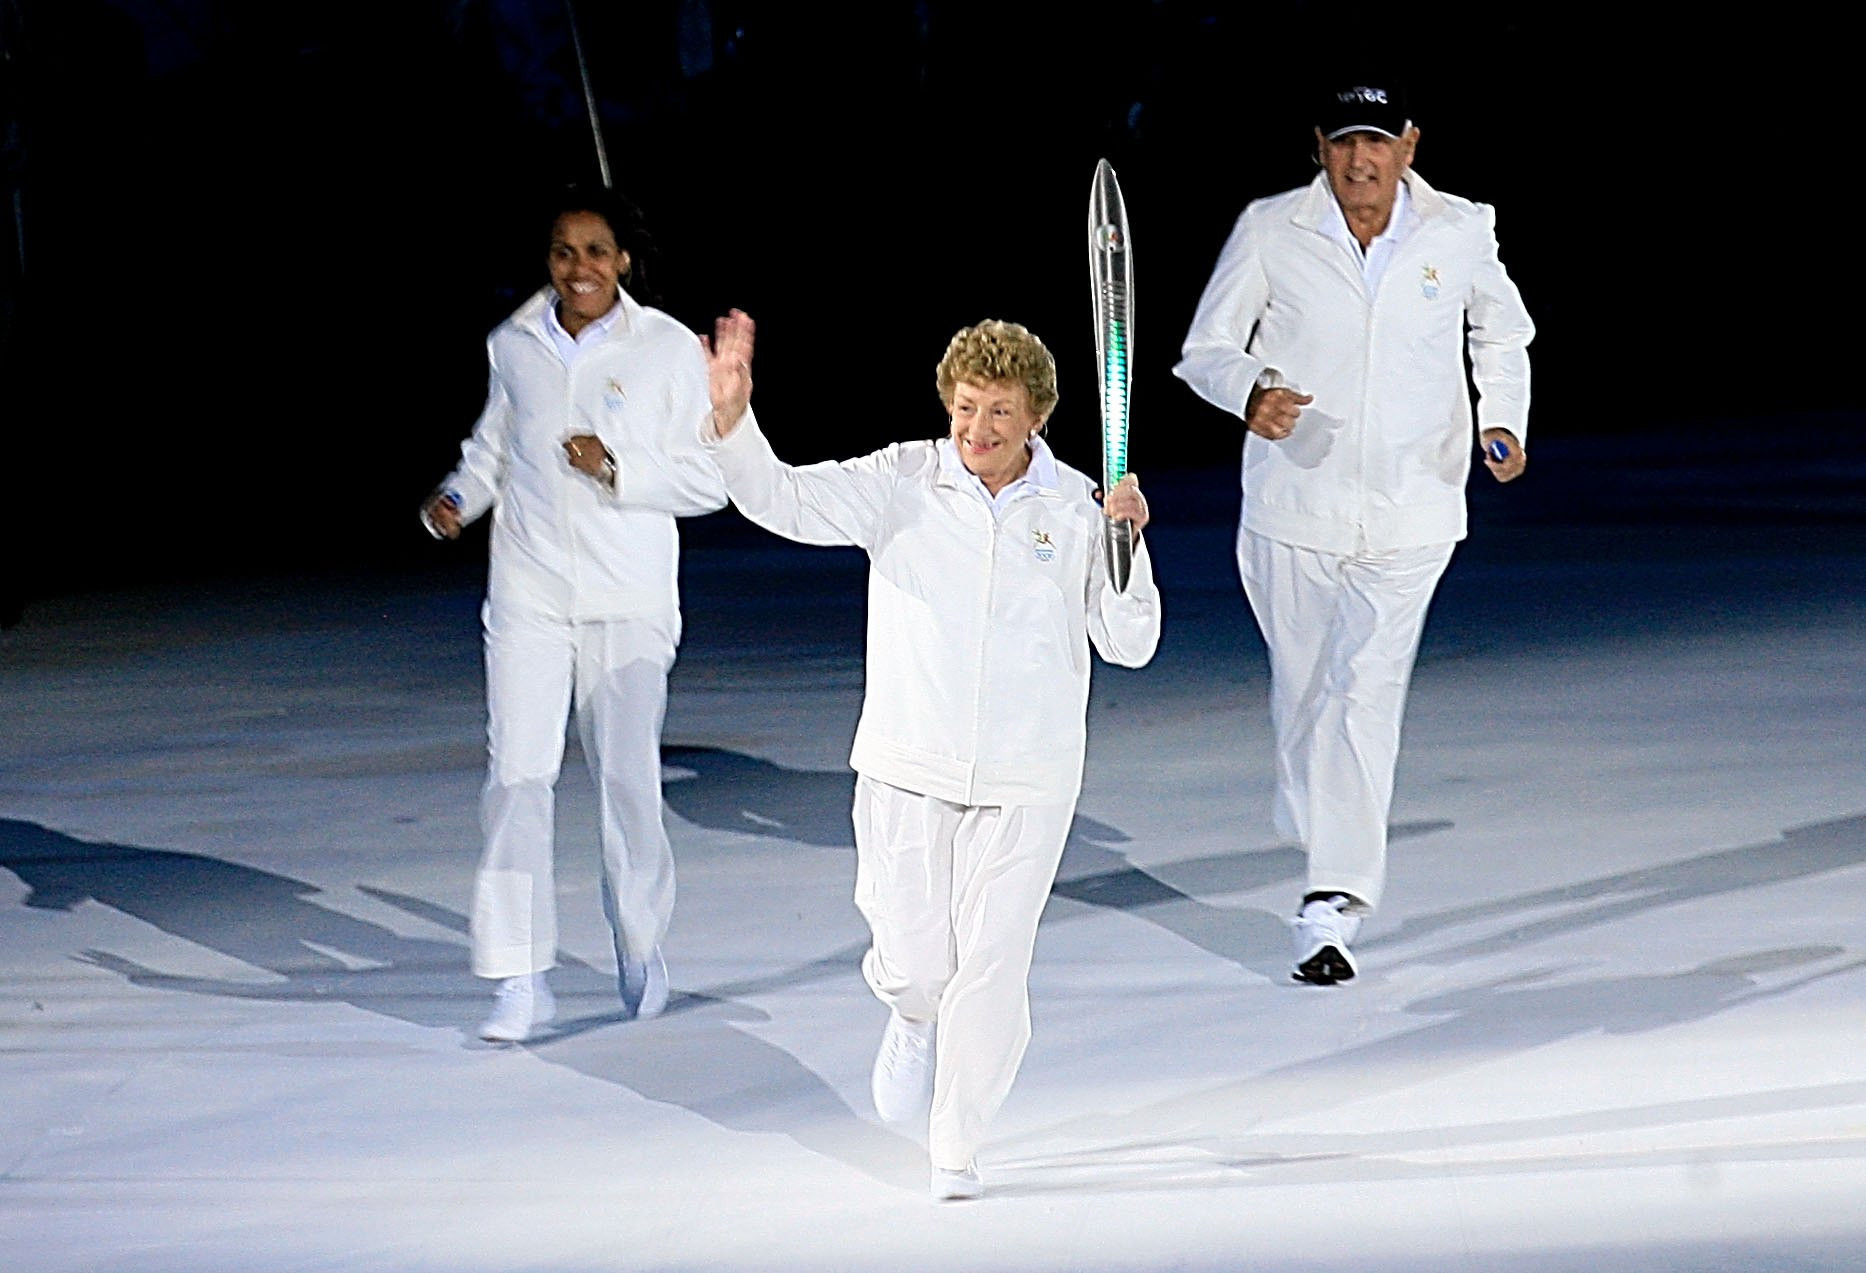 Marjorie Jackson-Nelson, holding the Queen's Baton at Melbourne 2006, has received life membership from Commonwealth Games Australia ©Getty Images